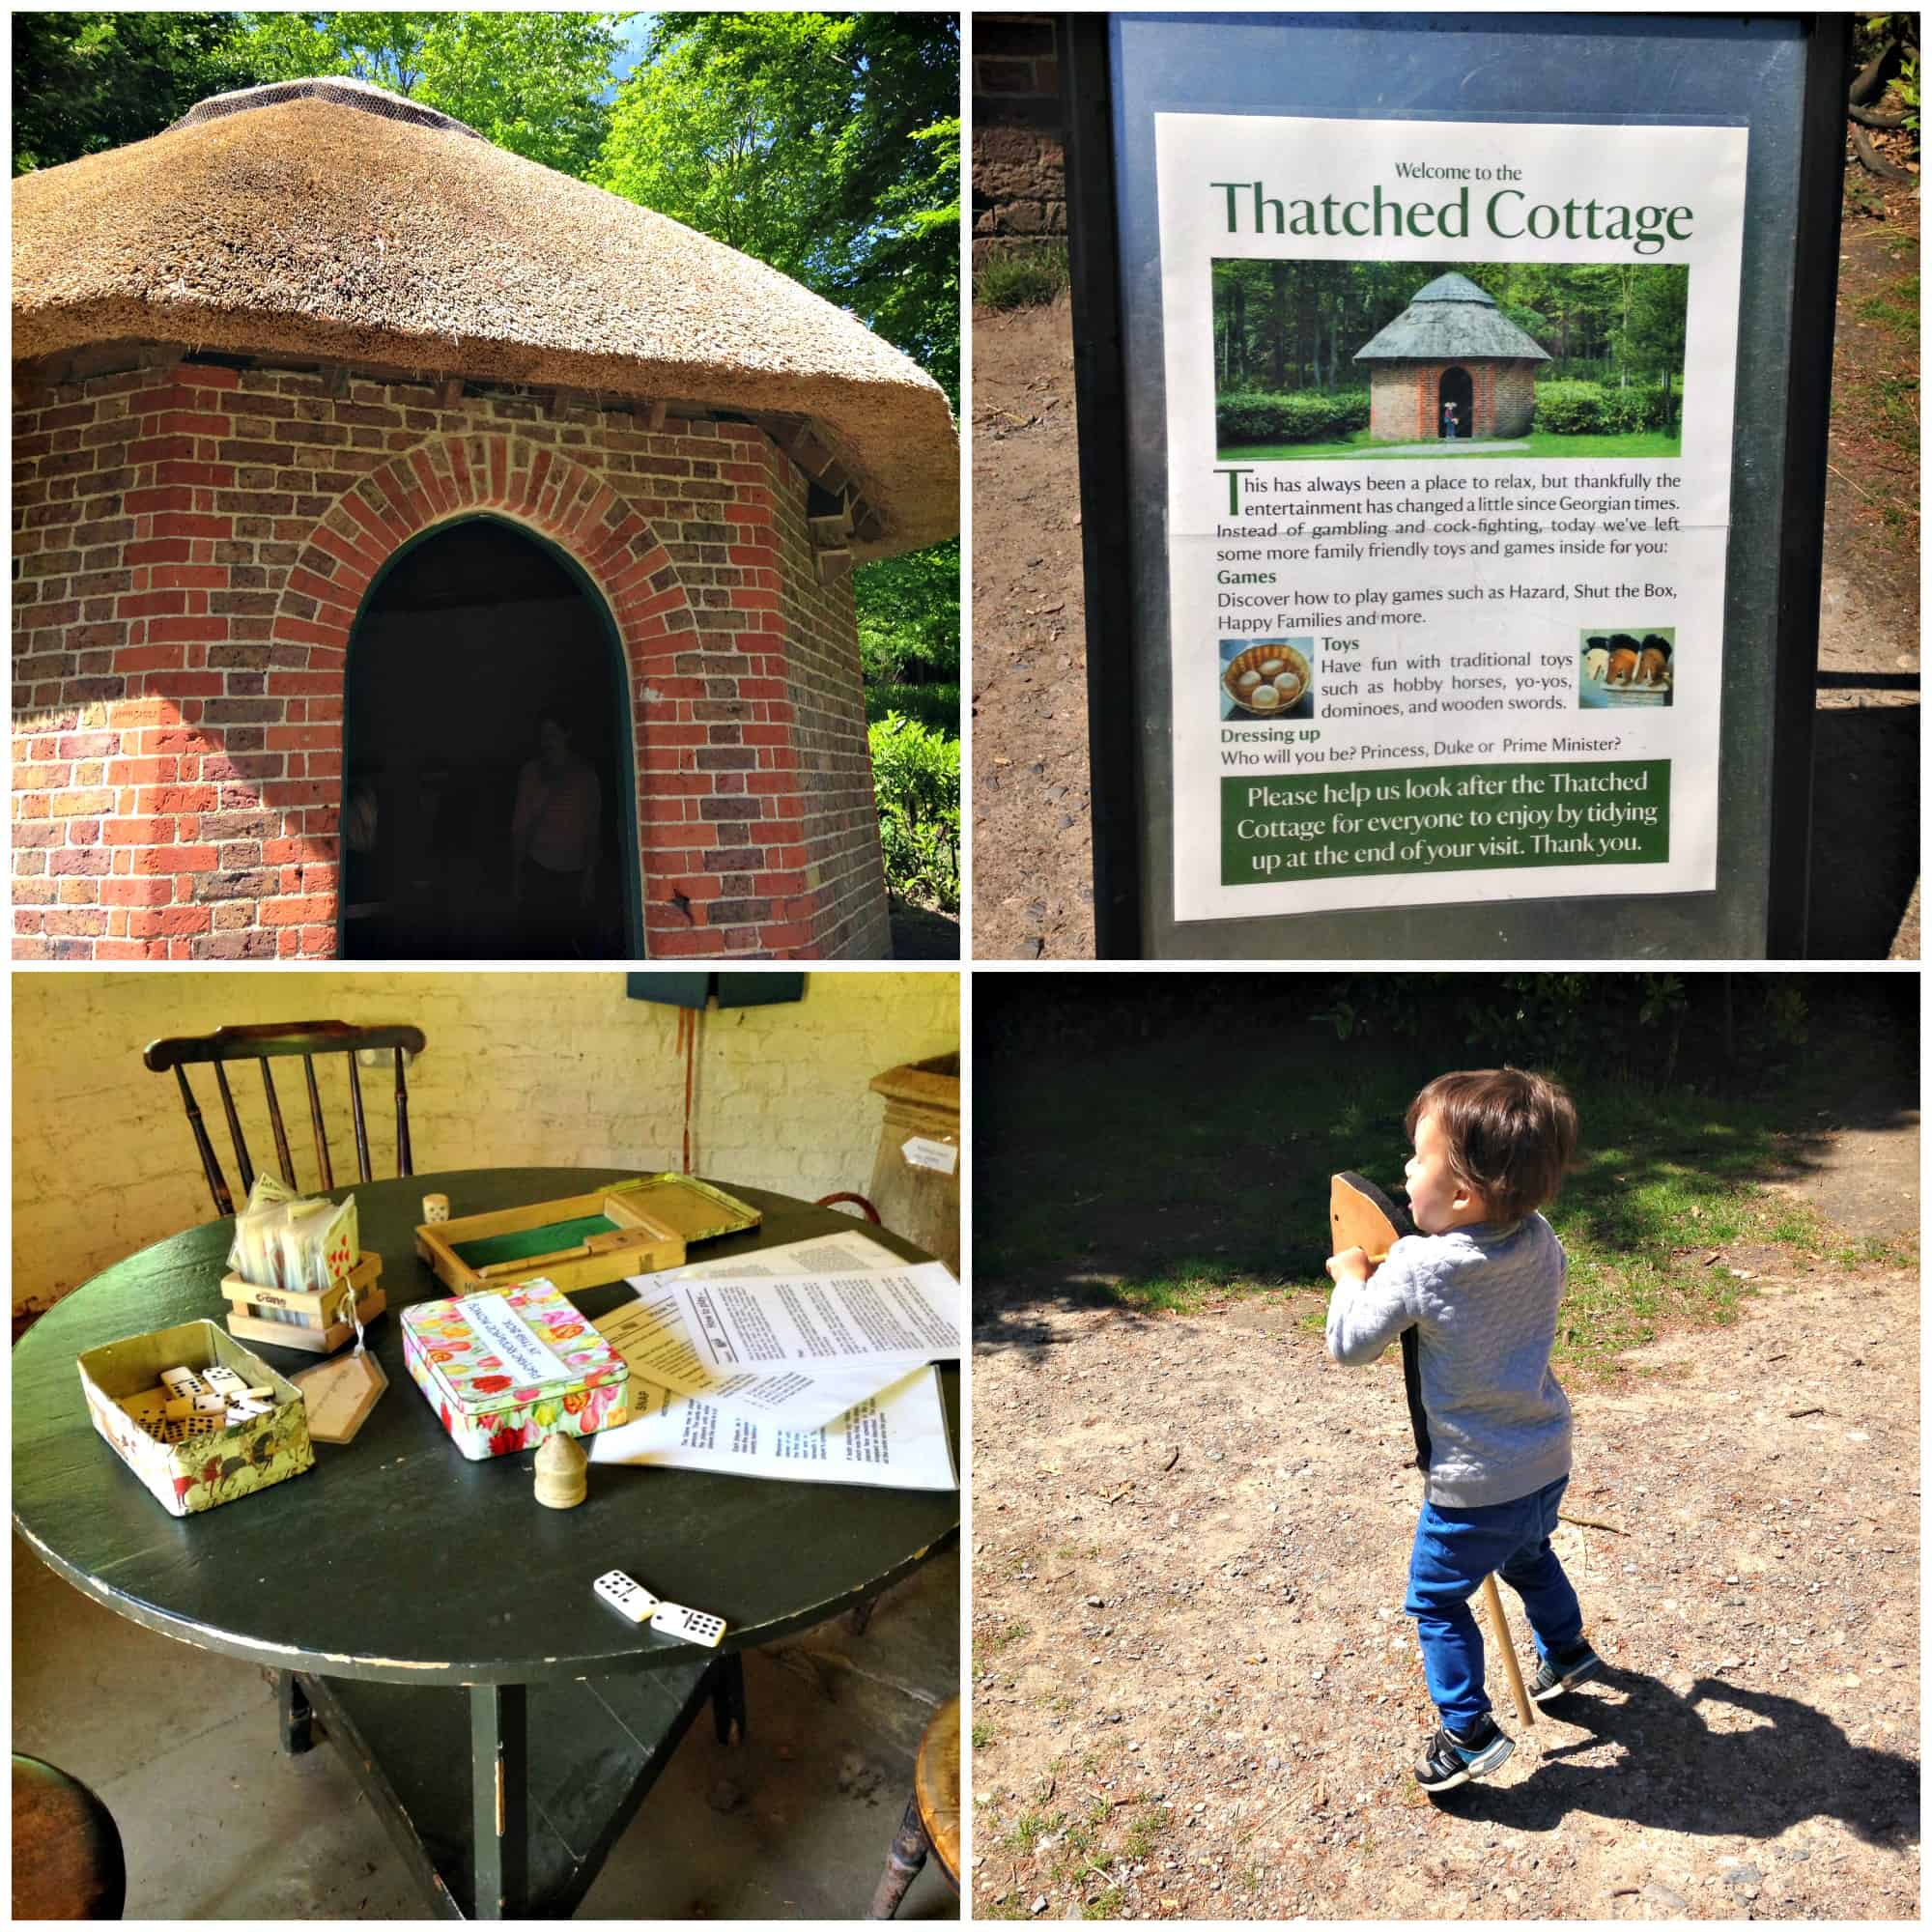 The Thatched Cottage at National Trust's Claremont Gardens in Surrey My Travel Monkey